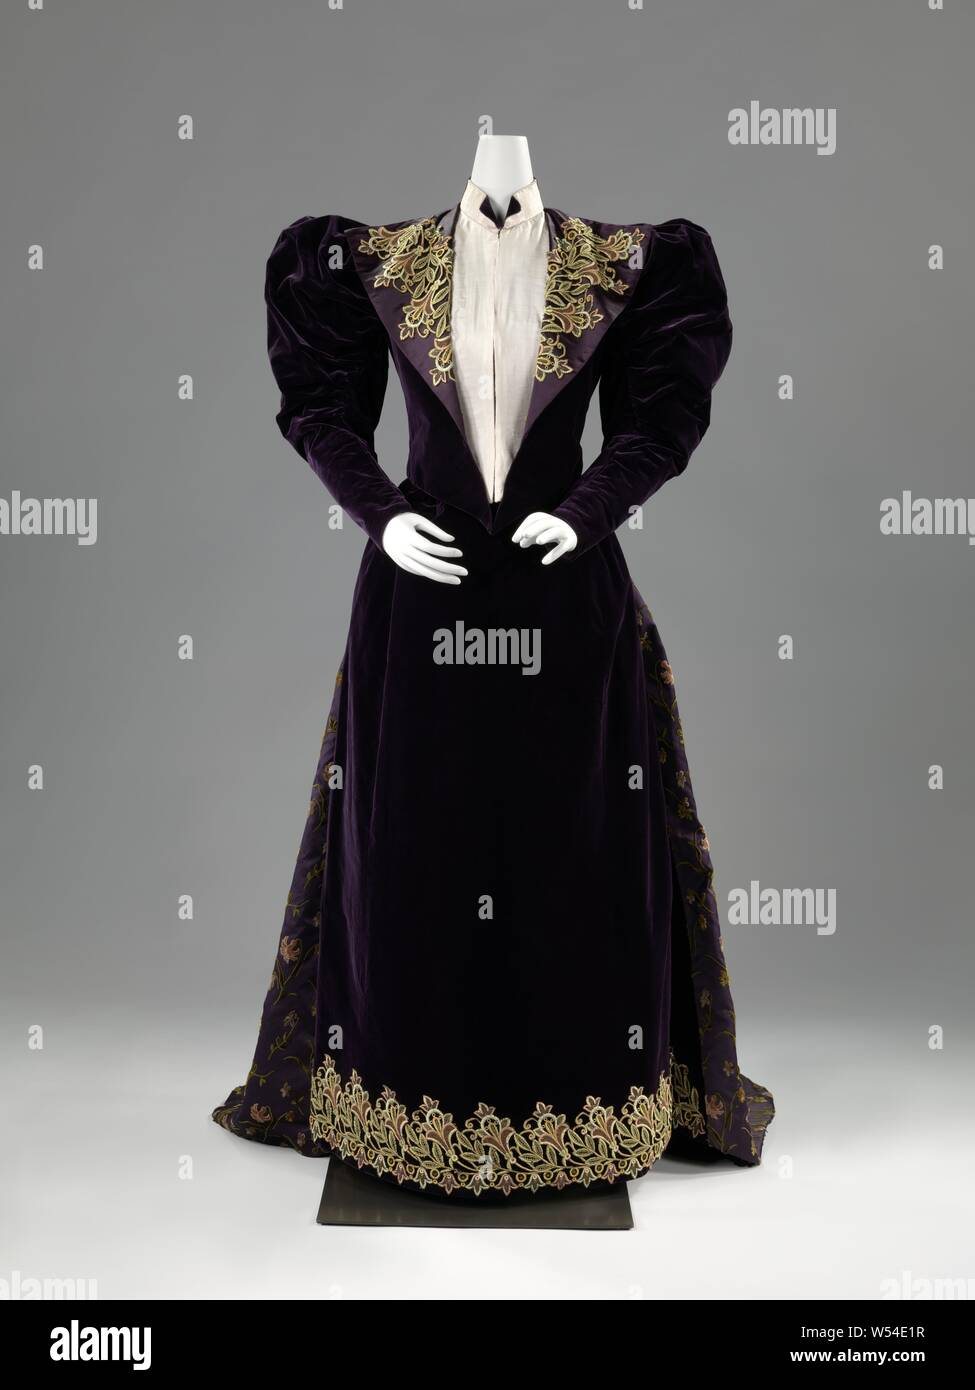 Dress With Appliques Dress With Appliques Purple Velvet Dress With Multicolored Floral Appliques Consisting Of A Body A And A Skirt B The Body Has Long Sleeves Whose Wide Head Is Formed